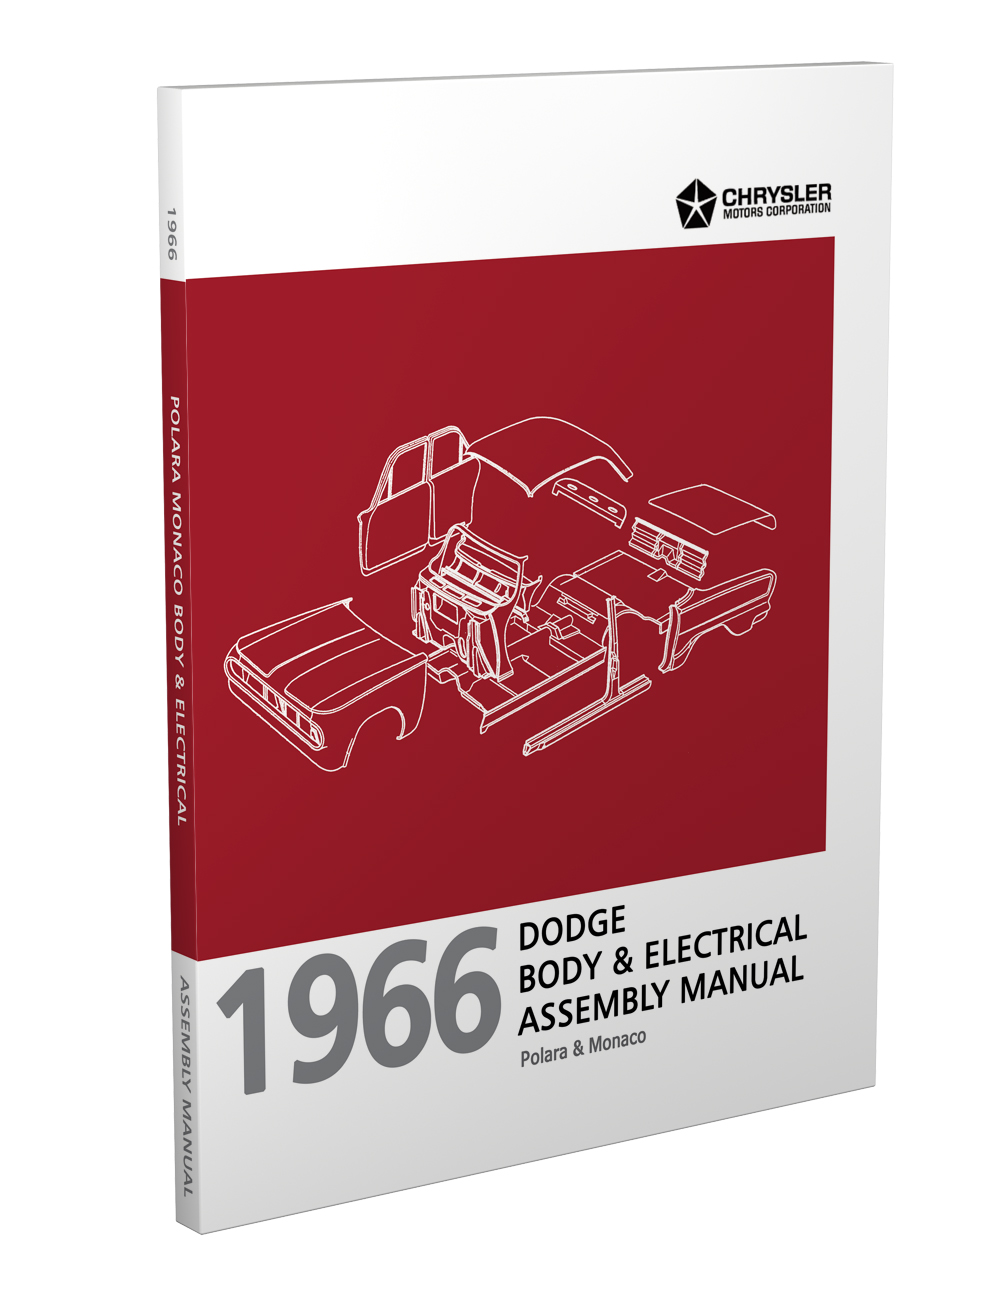 hight resolution of 1966 dodge polara and monaco body electrical assembly manual reprint